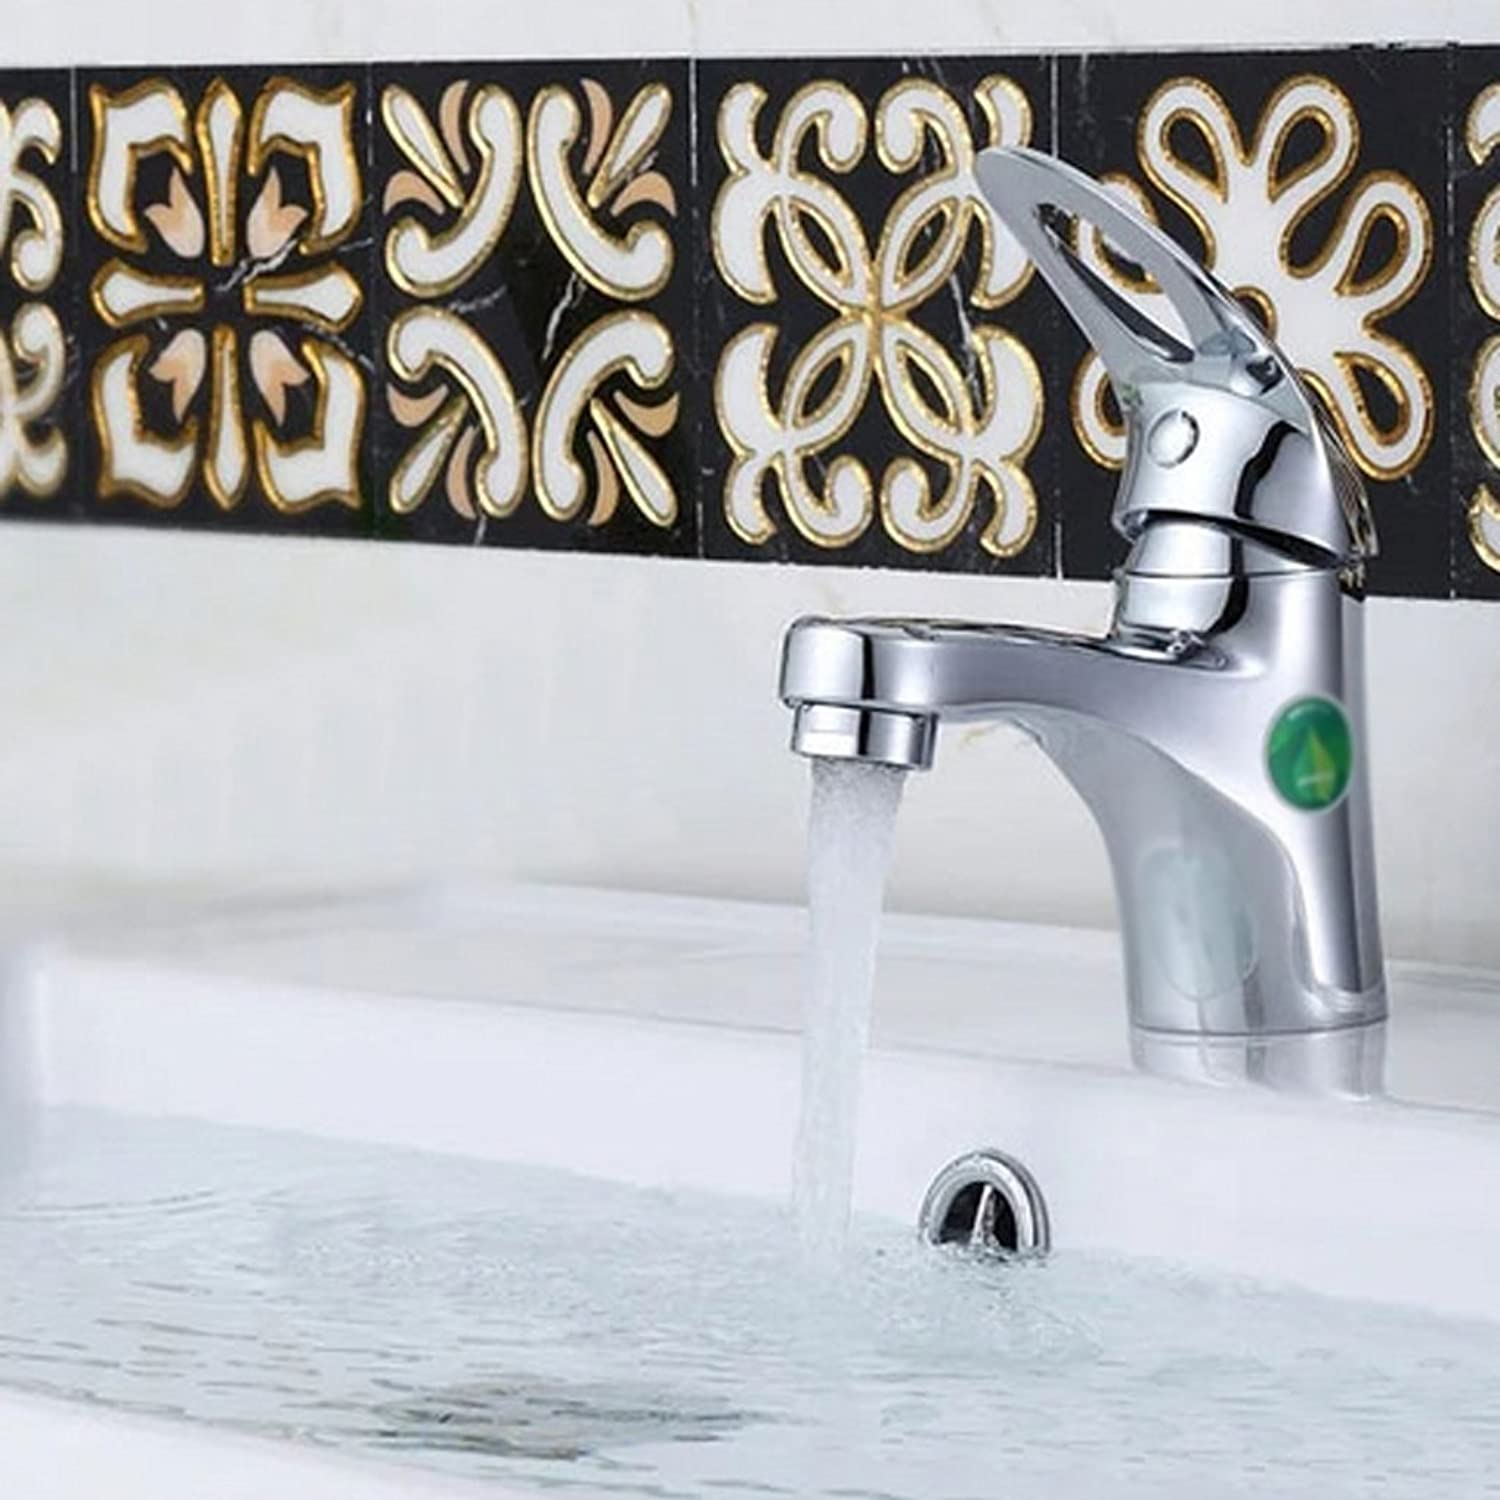 All Copper Basin Water Tap Single - Hole Hot And Cold Faucet Lead - Free Wash Basin Taipen Faucet Plating